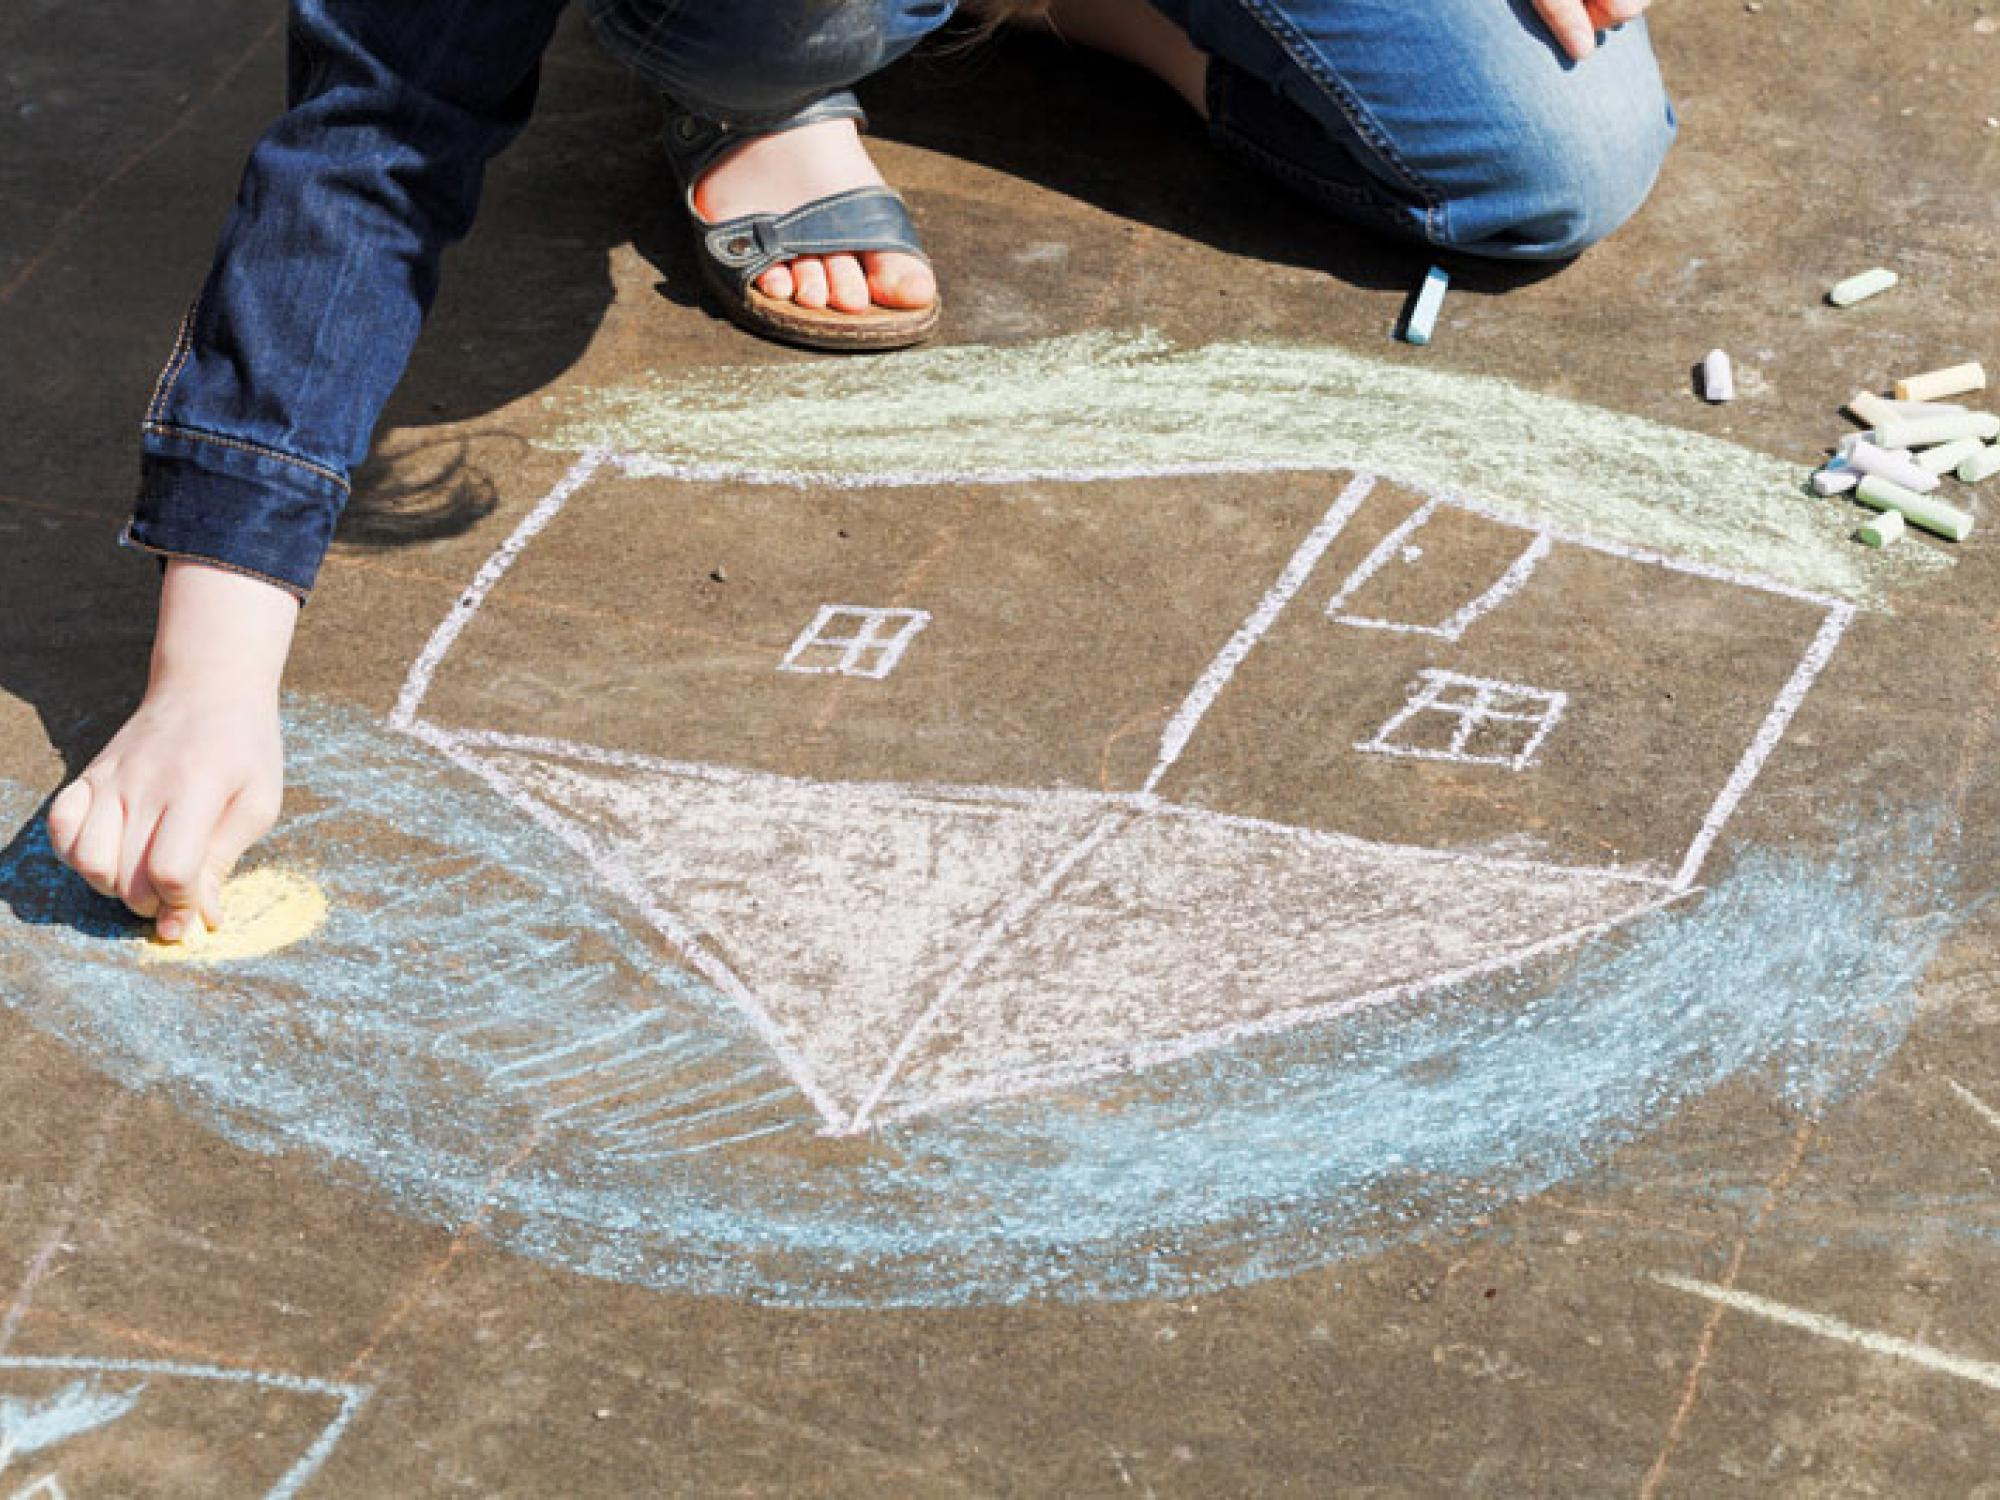 A child uses chalk to draw a house on the ground